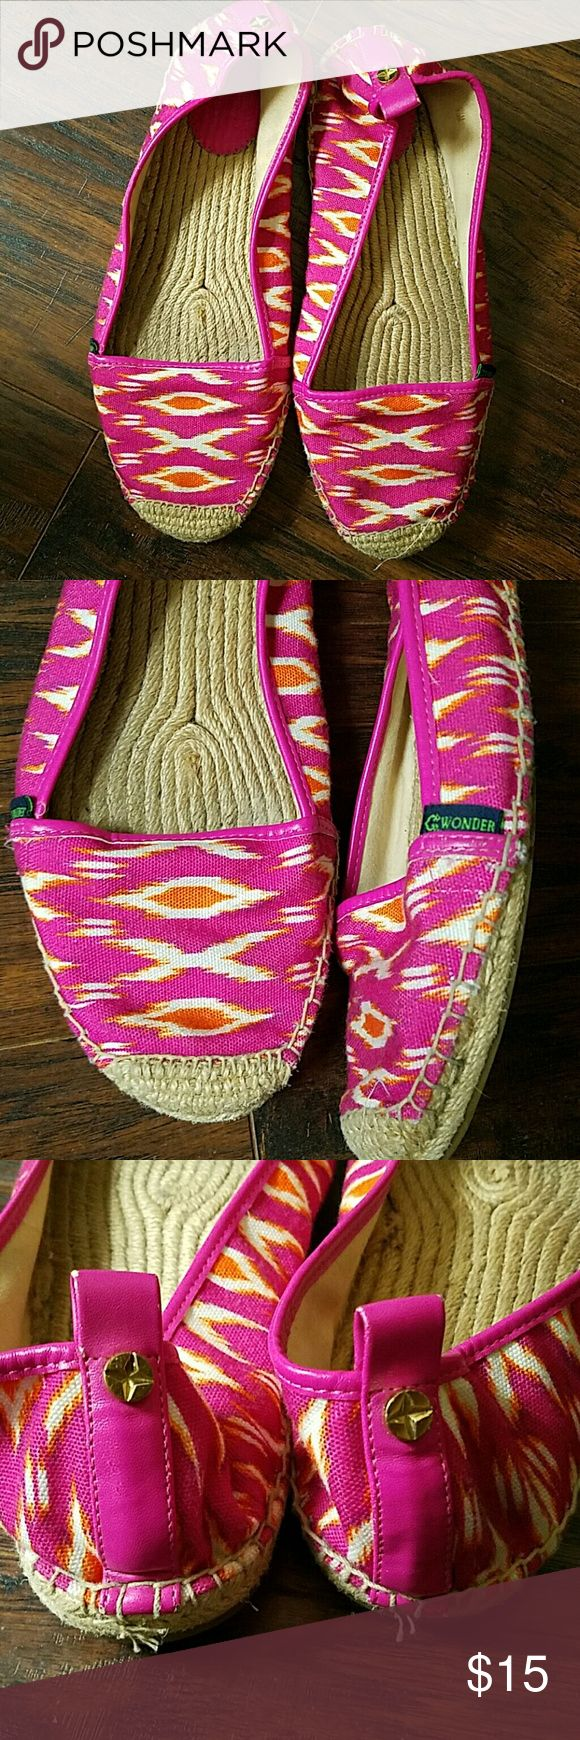 C Wonder Espadrilles Size 9.5 C Wonder Espadrilles Size 9.5 C Wonder Shoes Flats & Loafers